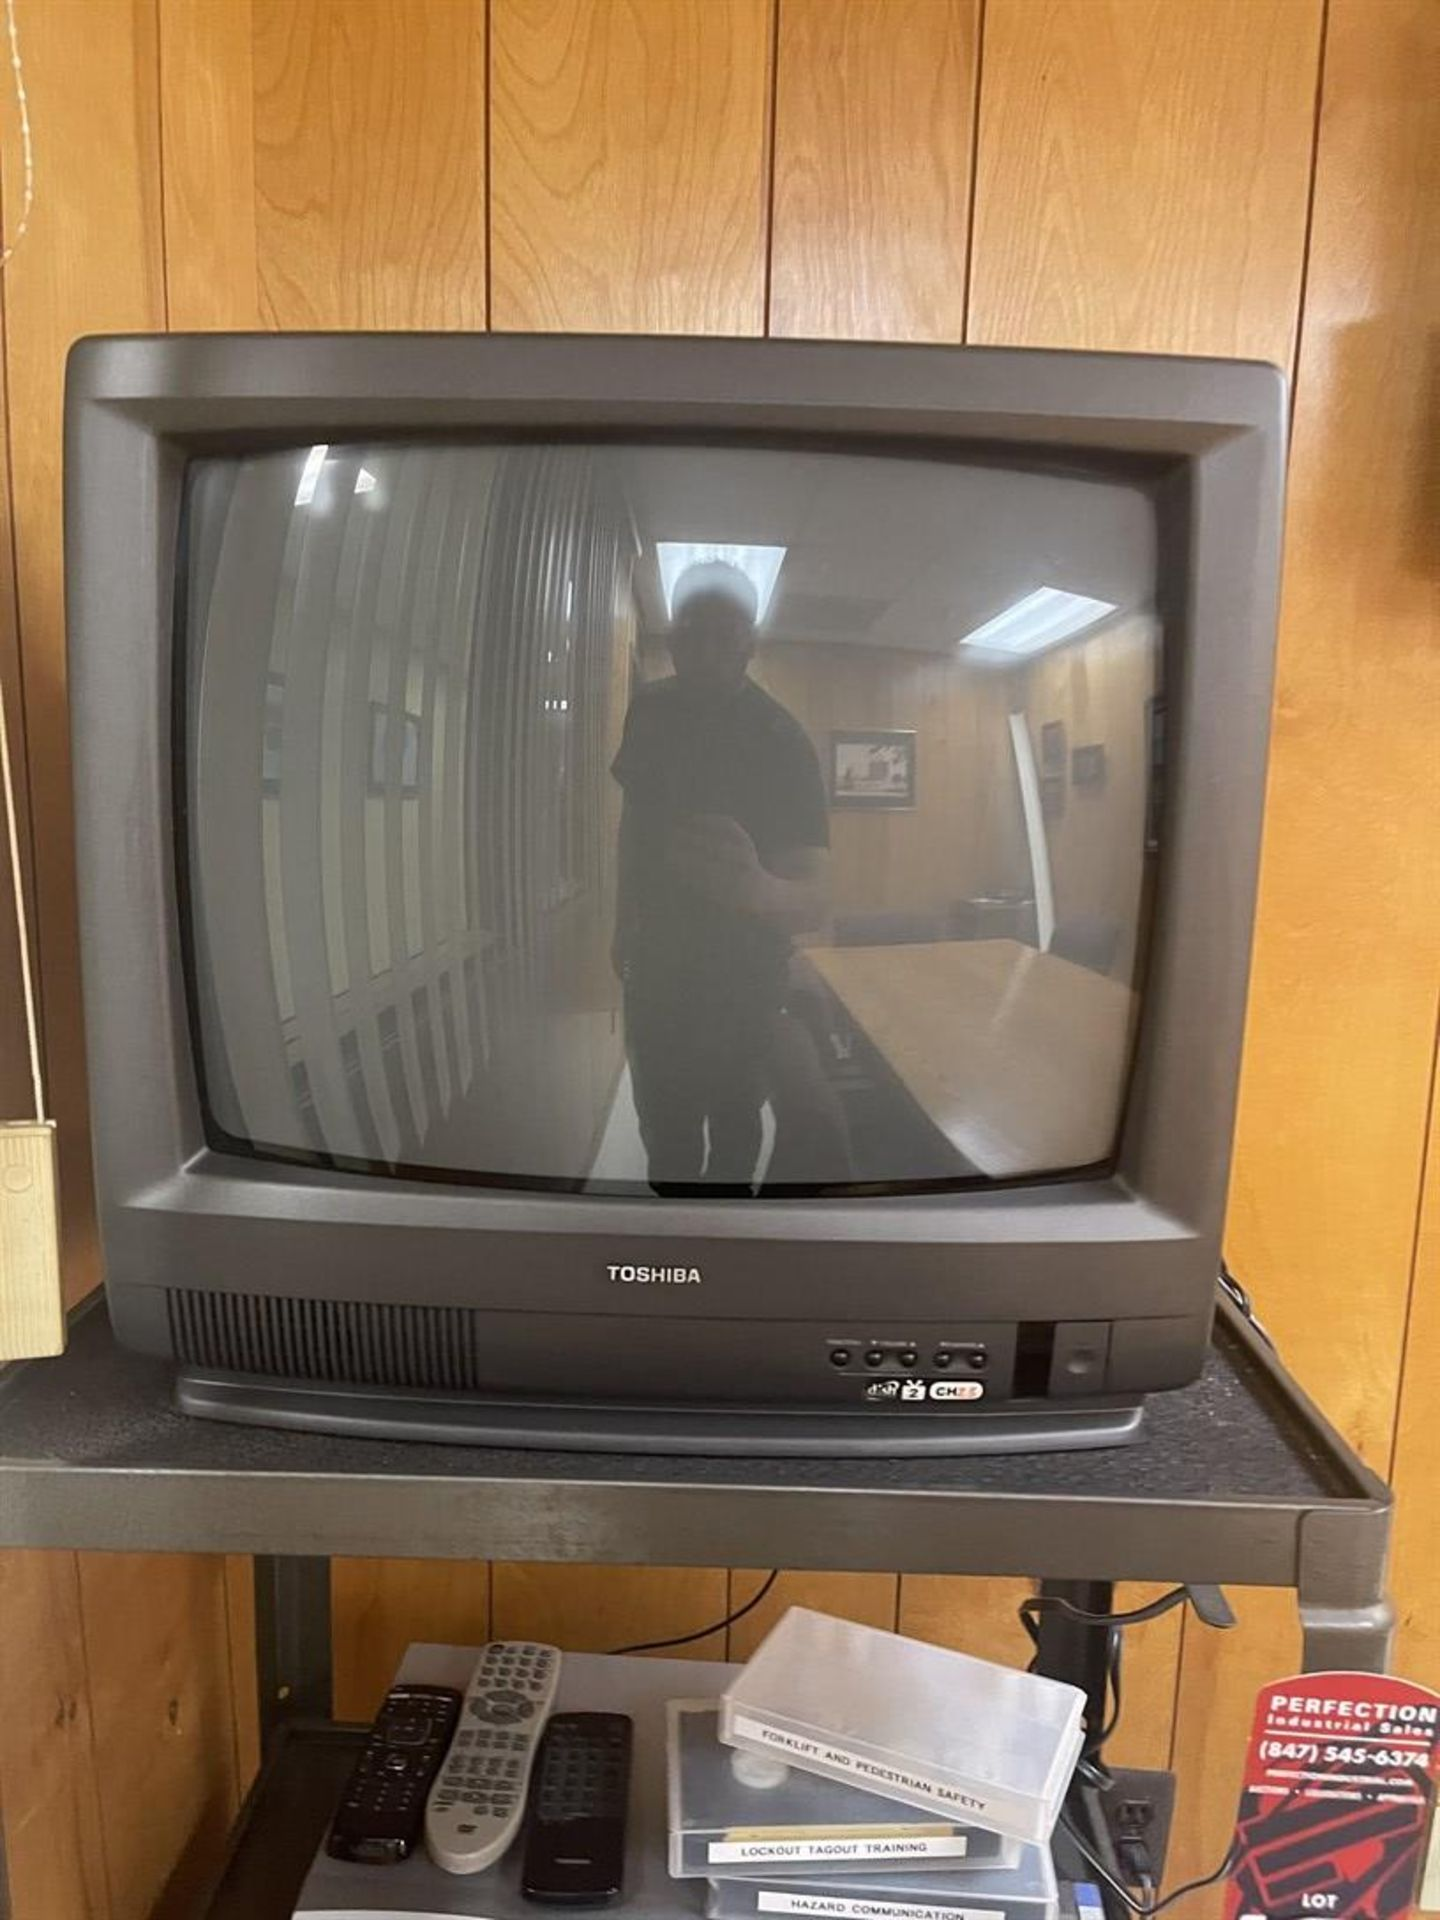 Rolling TV Cart w/ Toshiba TV and Combination VCR/DVD Player - Image 2 of 3